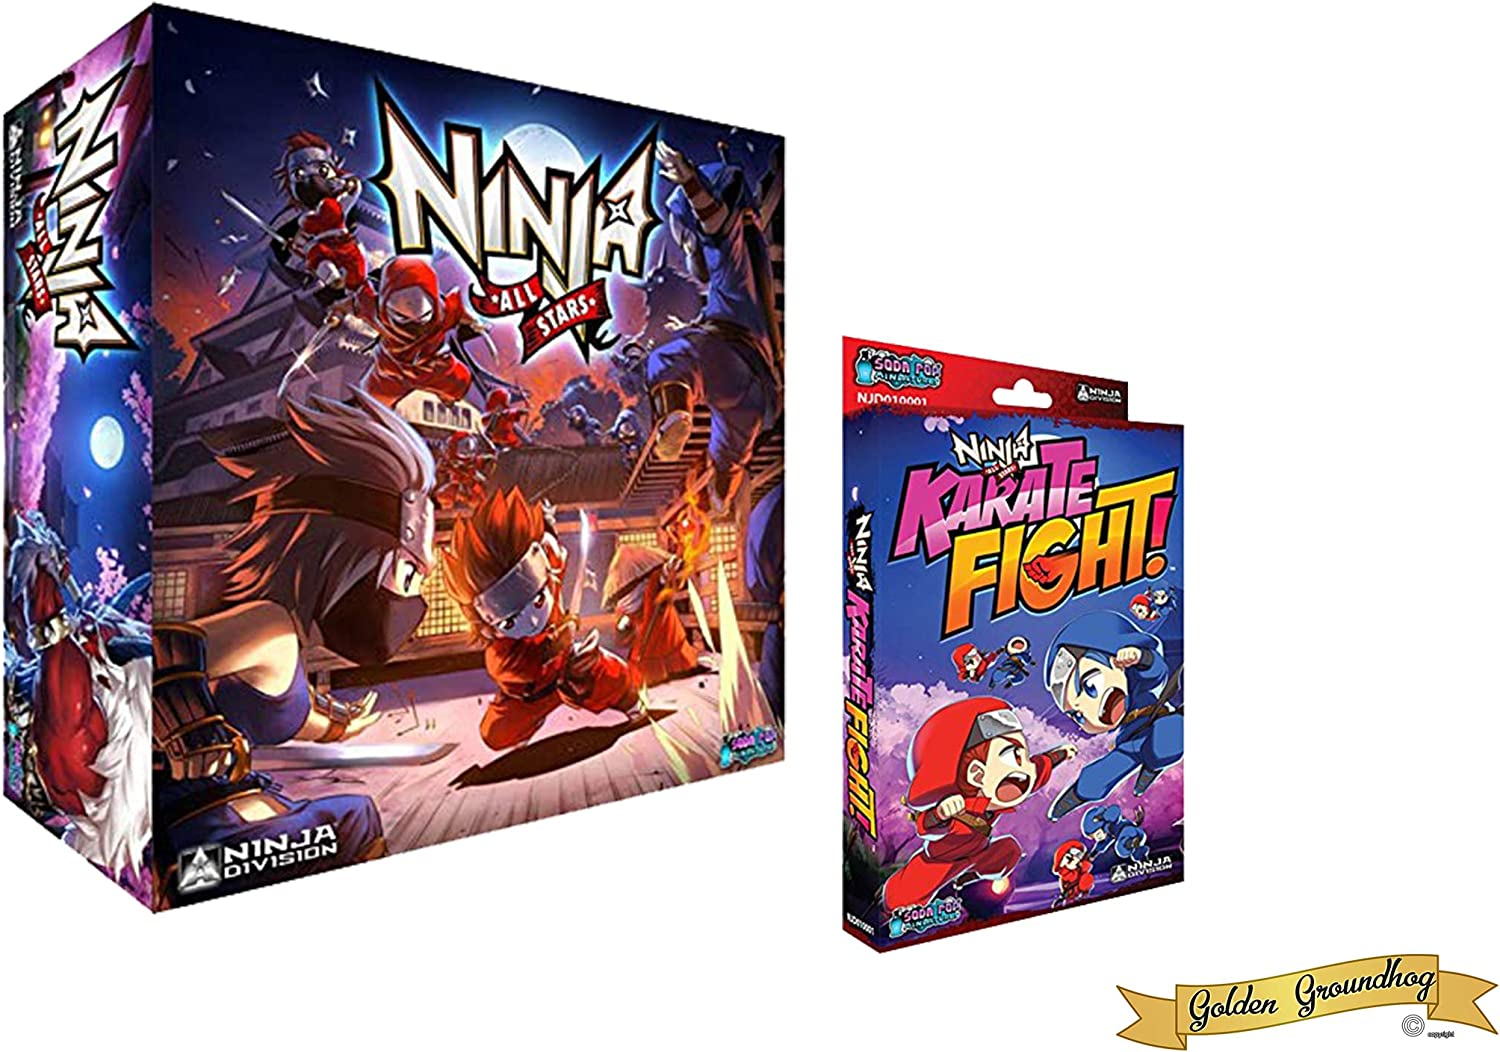 Ninja All Stars Board Game + Karate Fight Card Game - Bundle by Golden Groundhog!